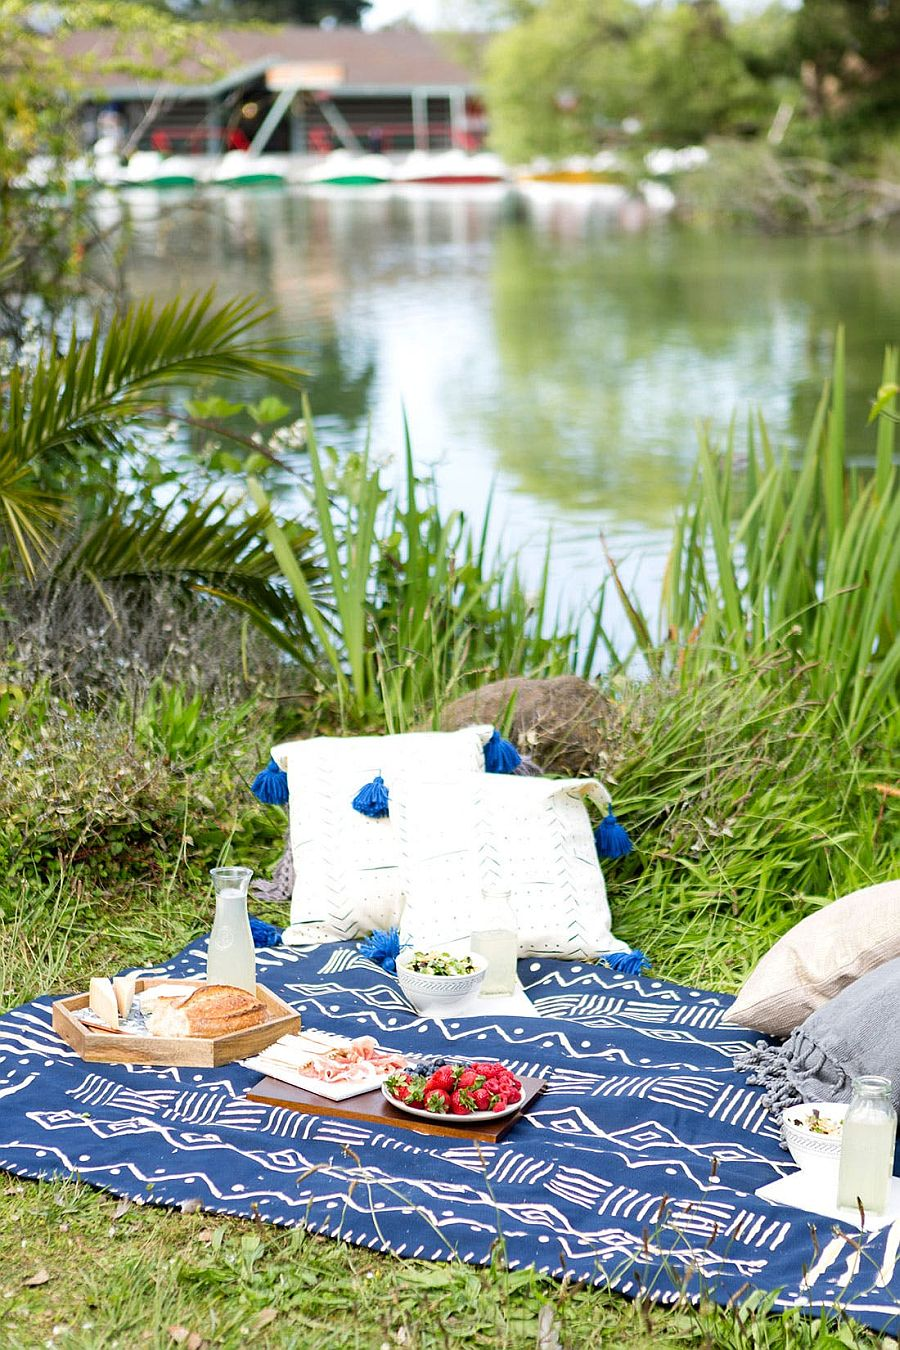 Mudcloth-Inspired Picnic Blanket